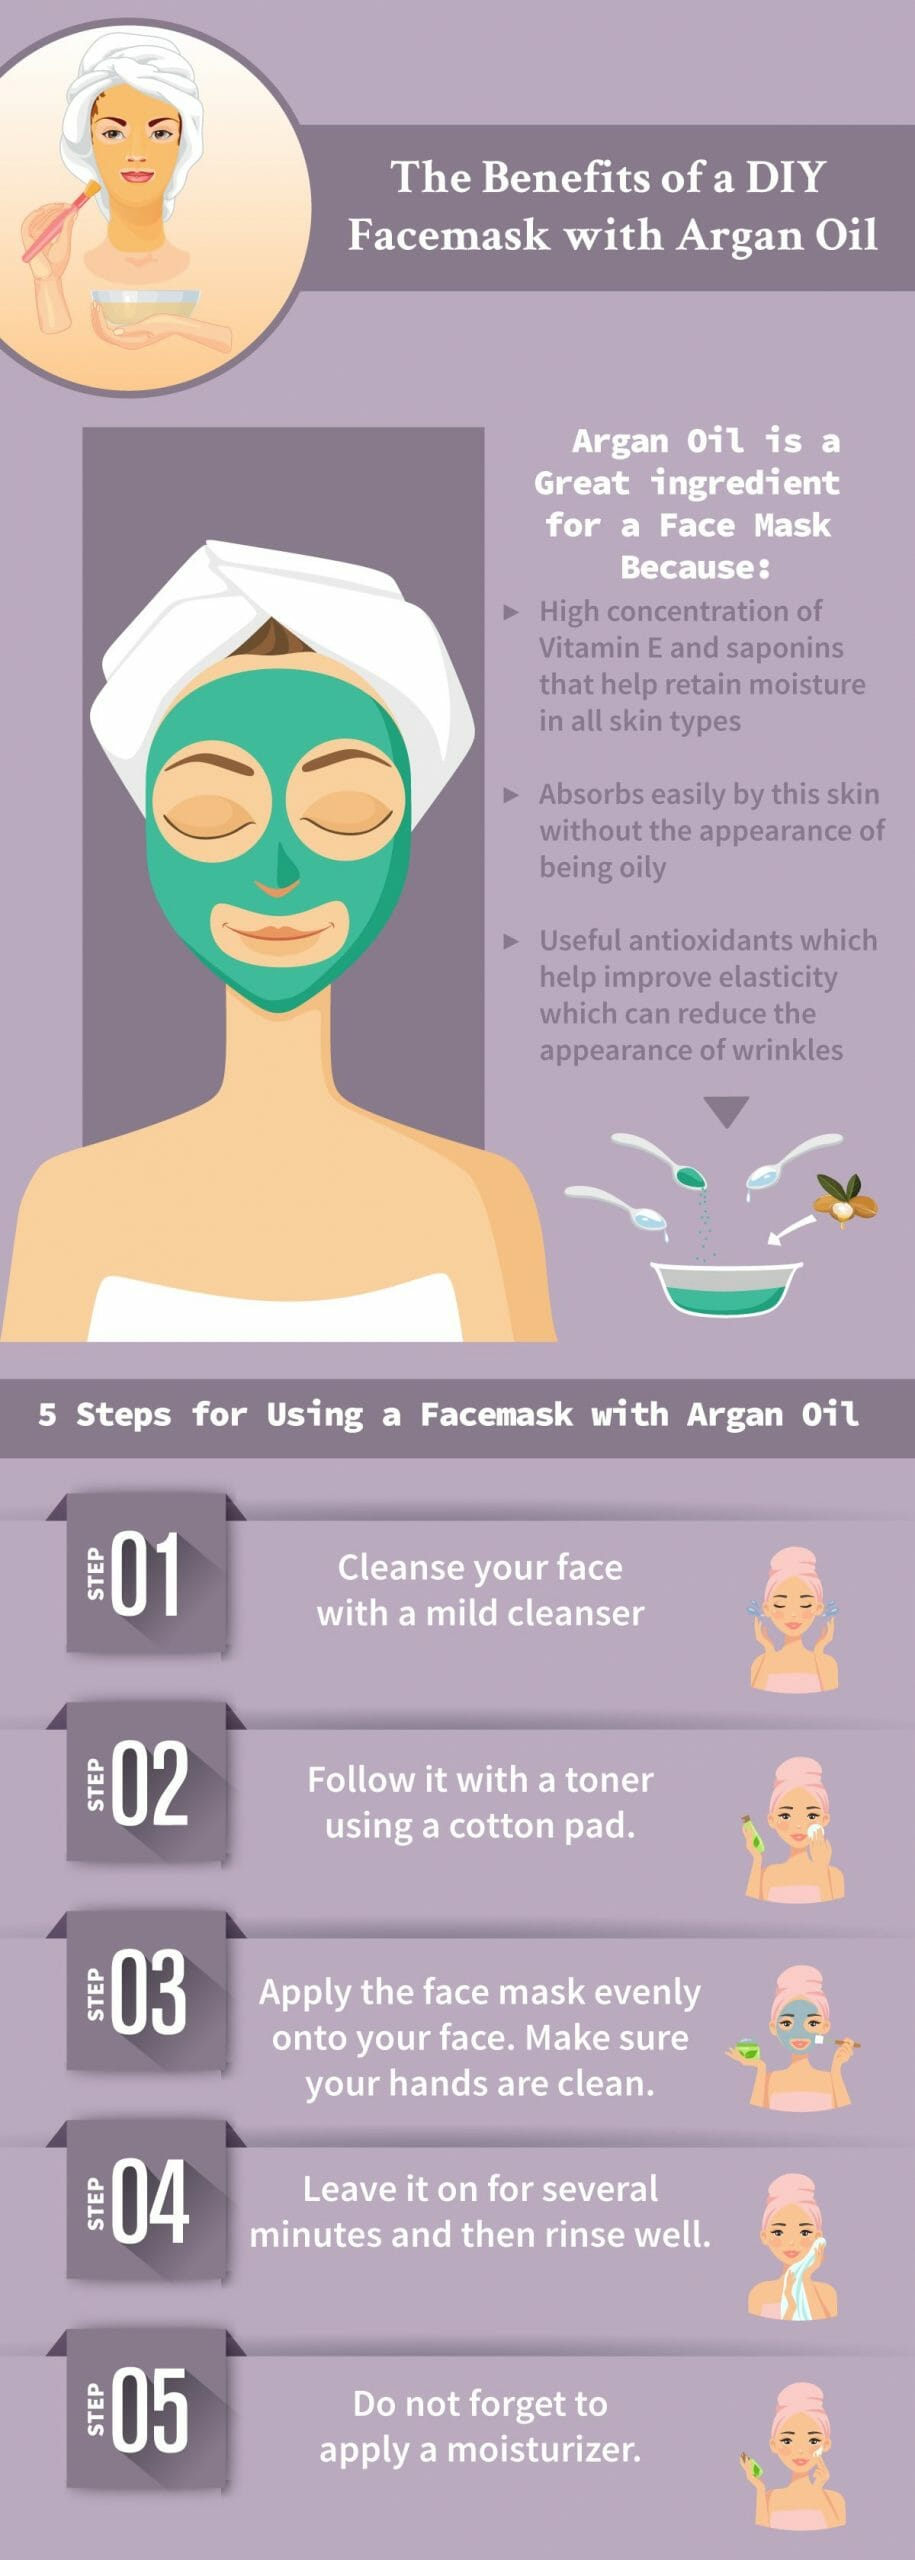 argan oil and face mask infographic